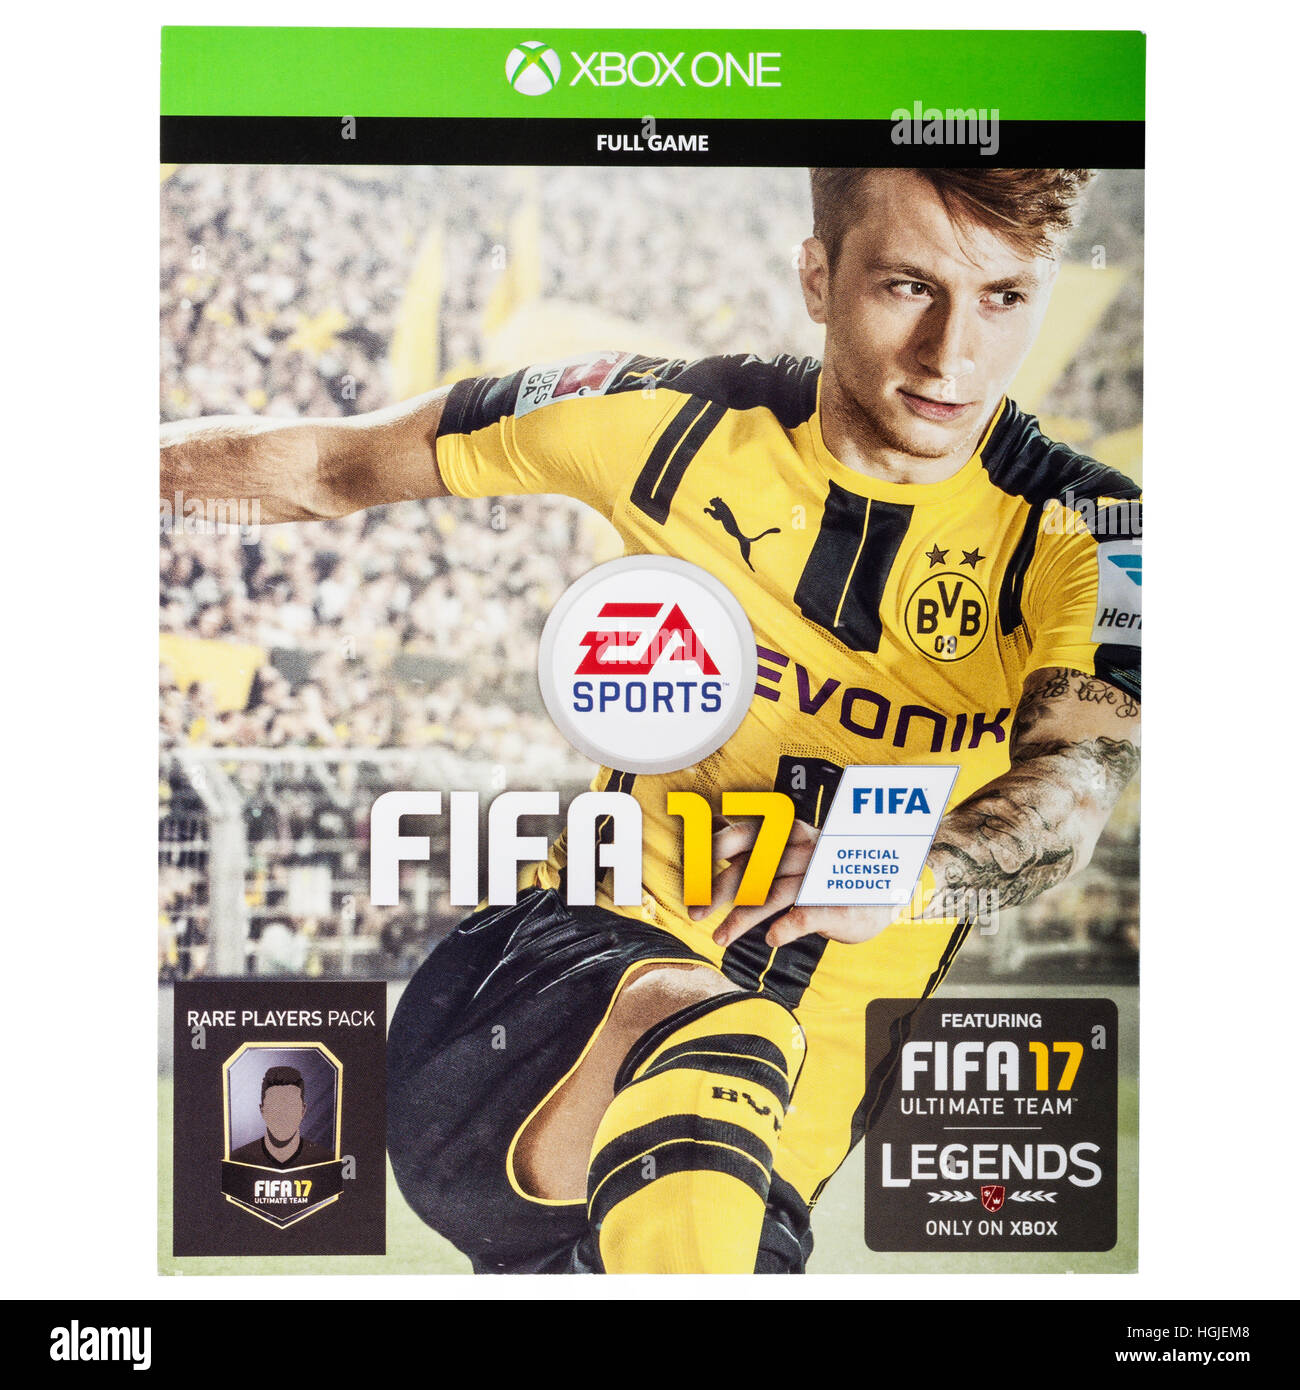 The XBOX ONE FIFA 17 game on a white background - Stock Image